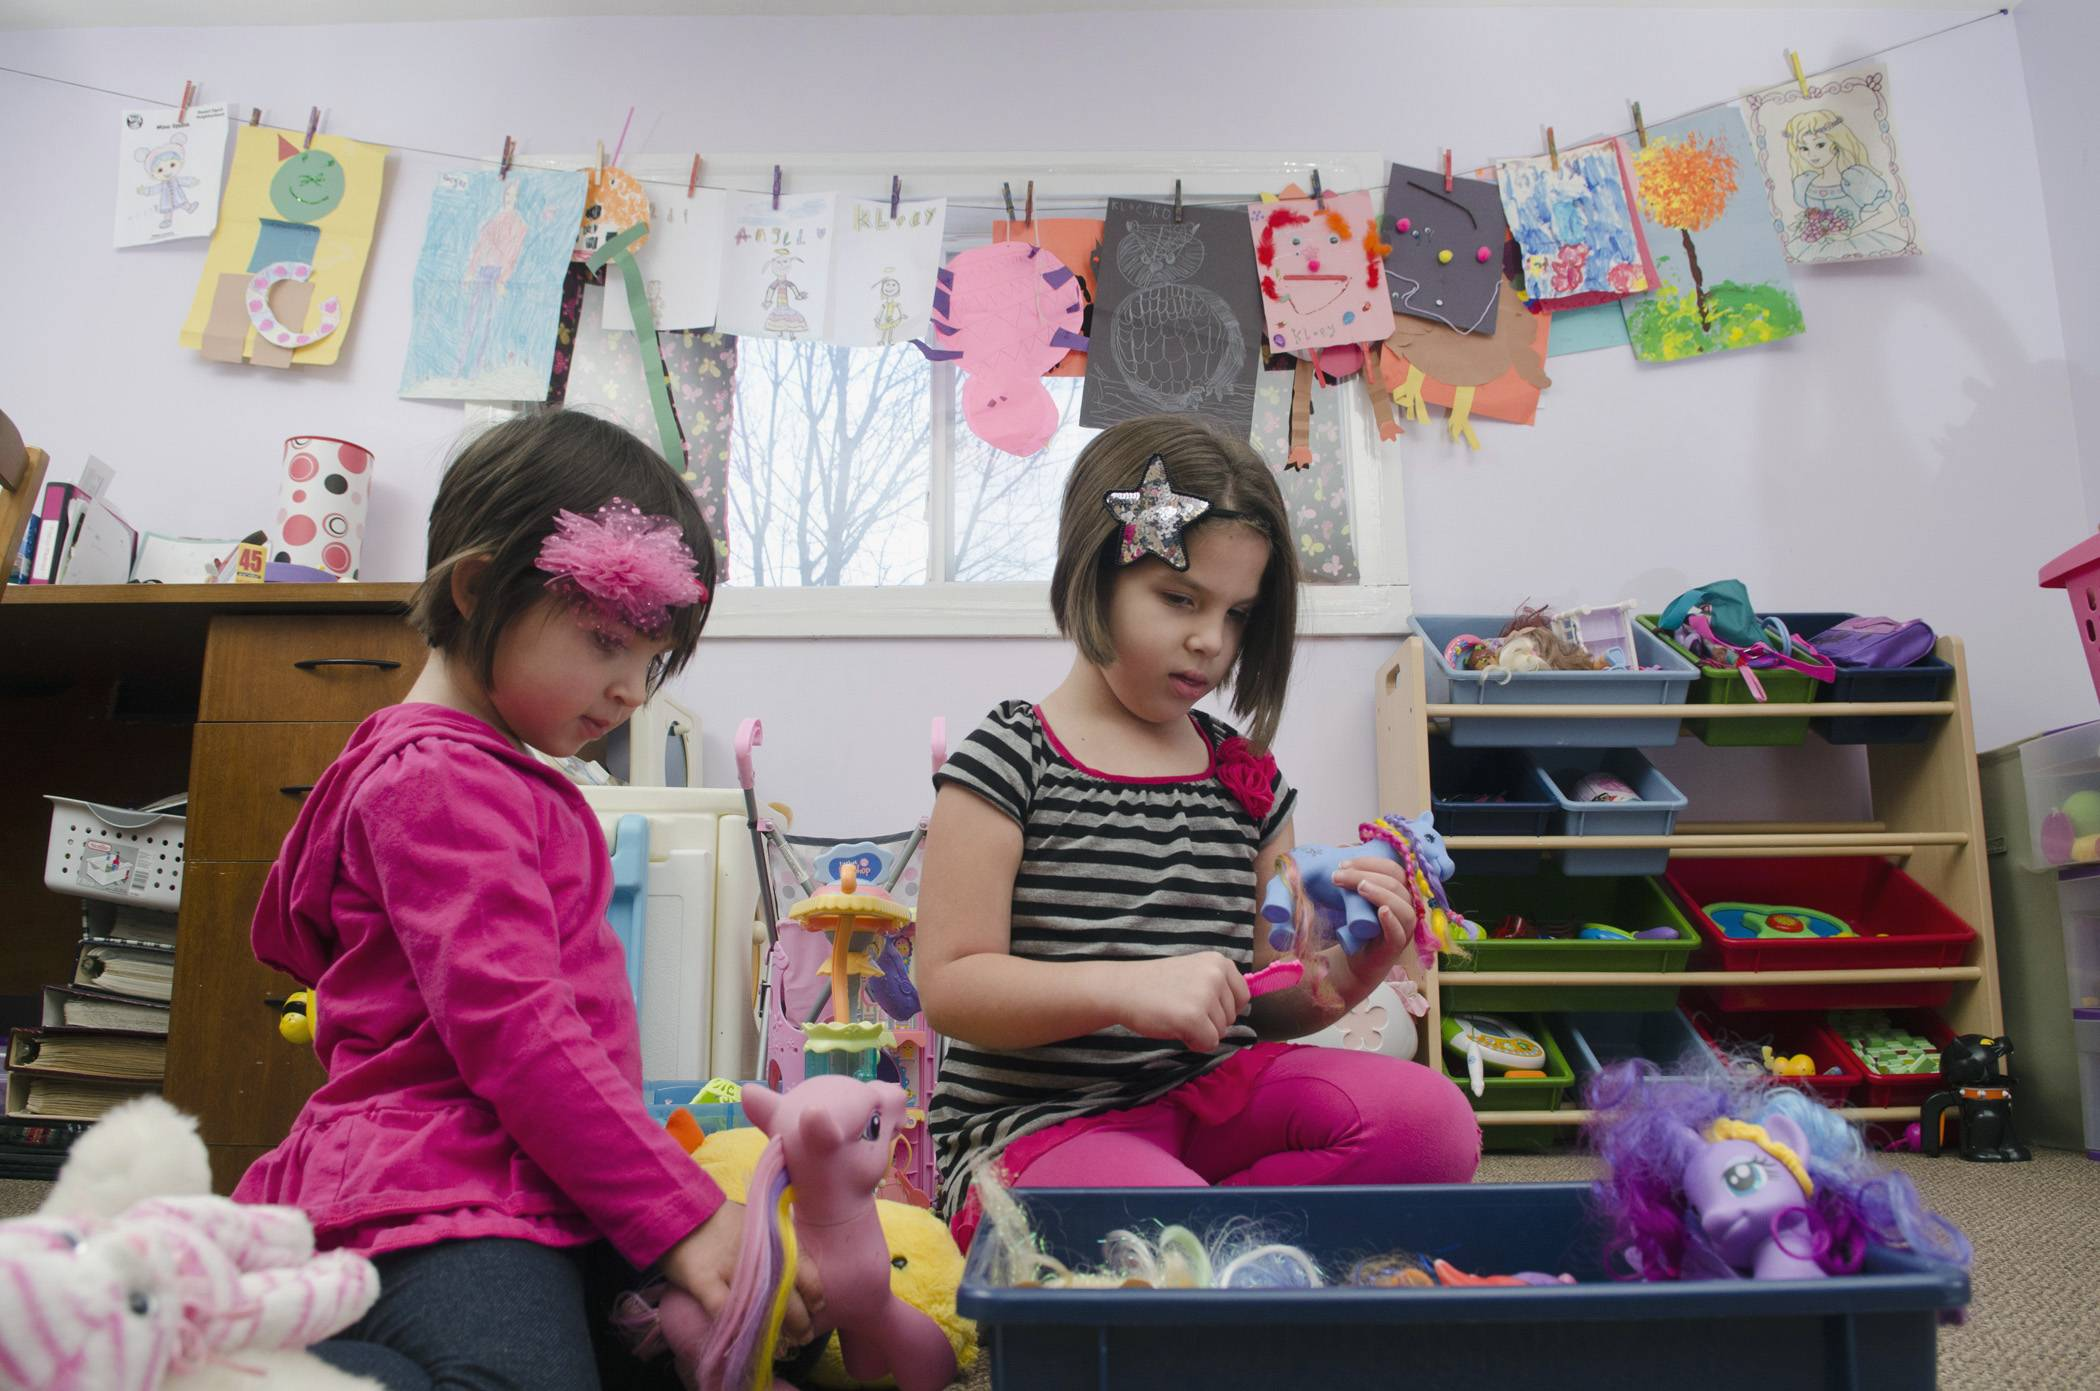 Kloey Trujillo, 5, plays with her sister Gabi, 3, at their home